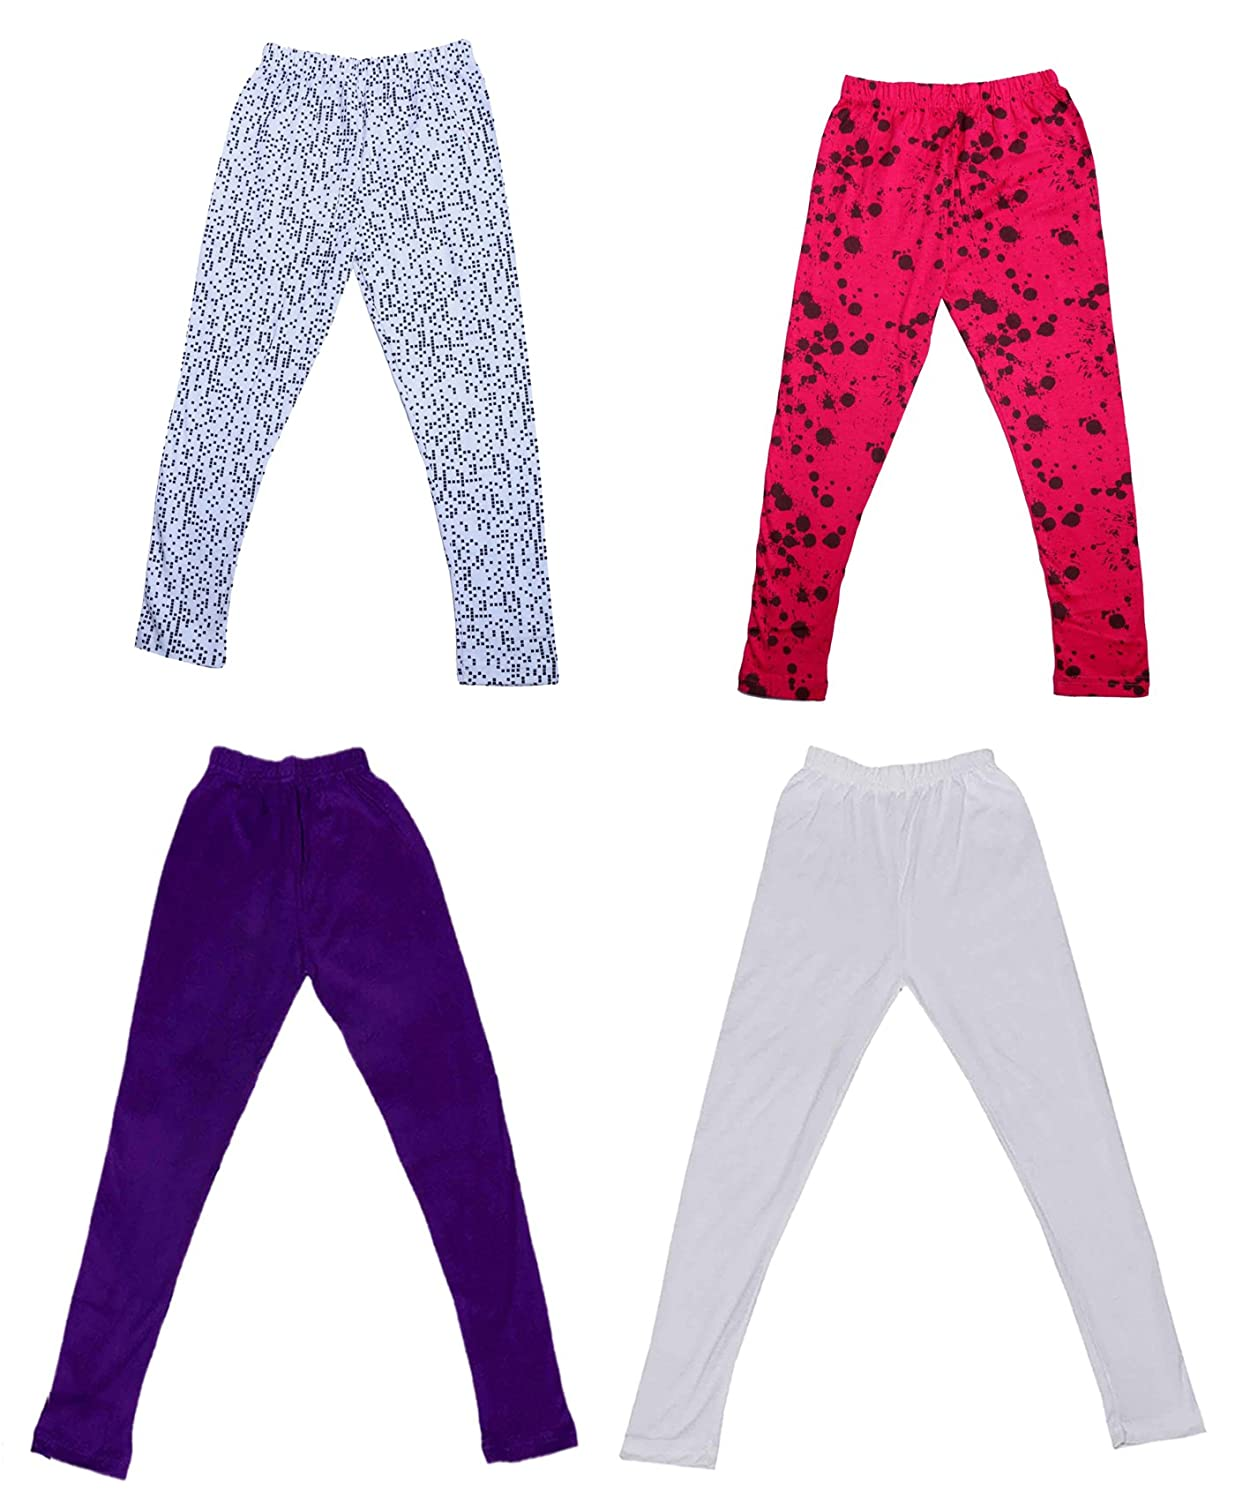 Indistar Girls 2 Cotton Solid Legging Pants Pack Of 4 and 2 Cotton Printed Legging Pants /_Multicolor/_Size-4-5 Years/_71402032021-IW-P4-26